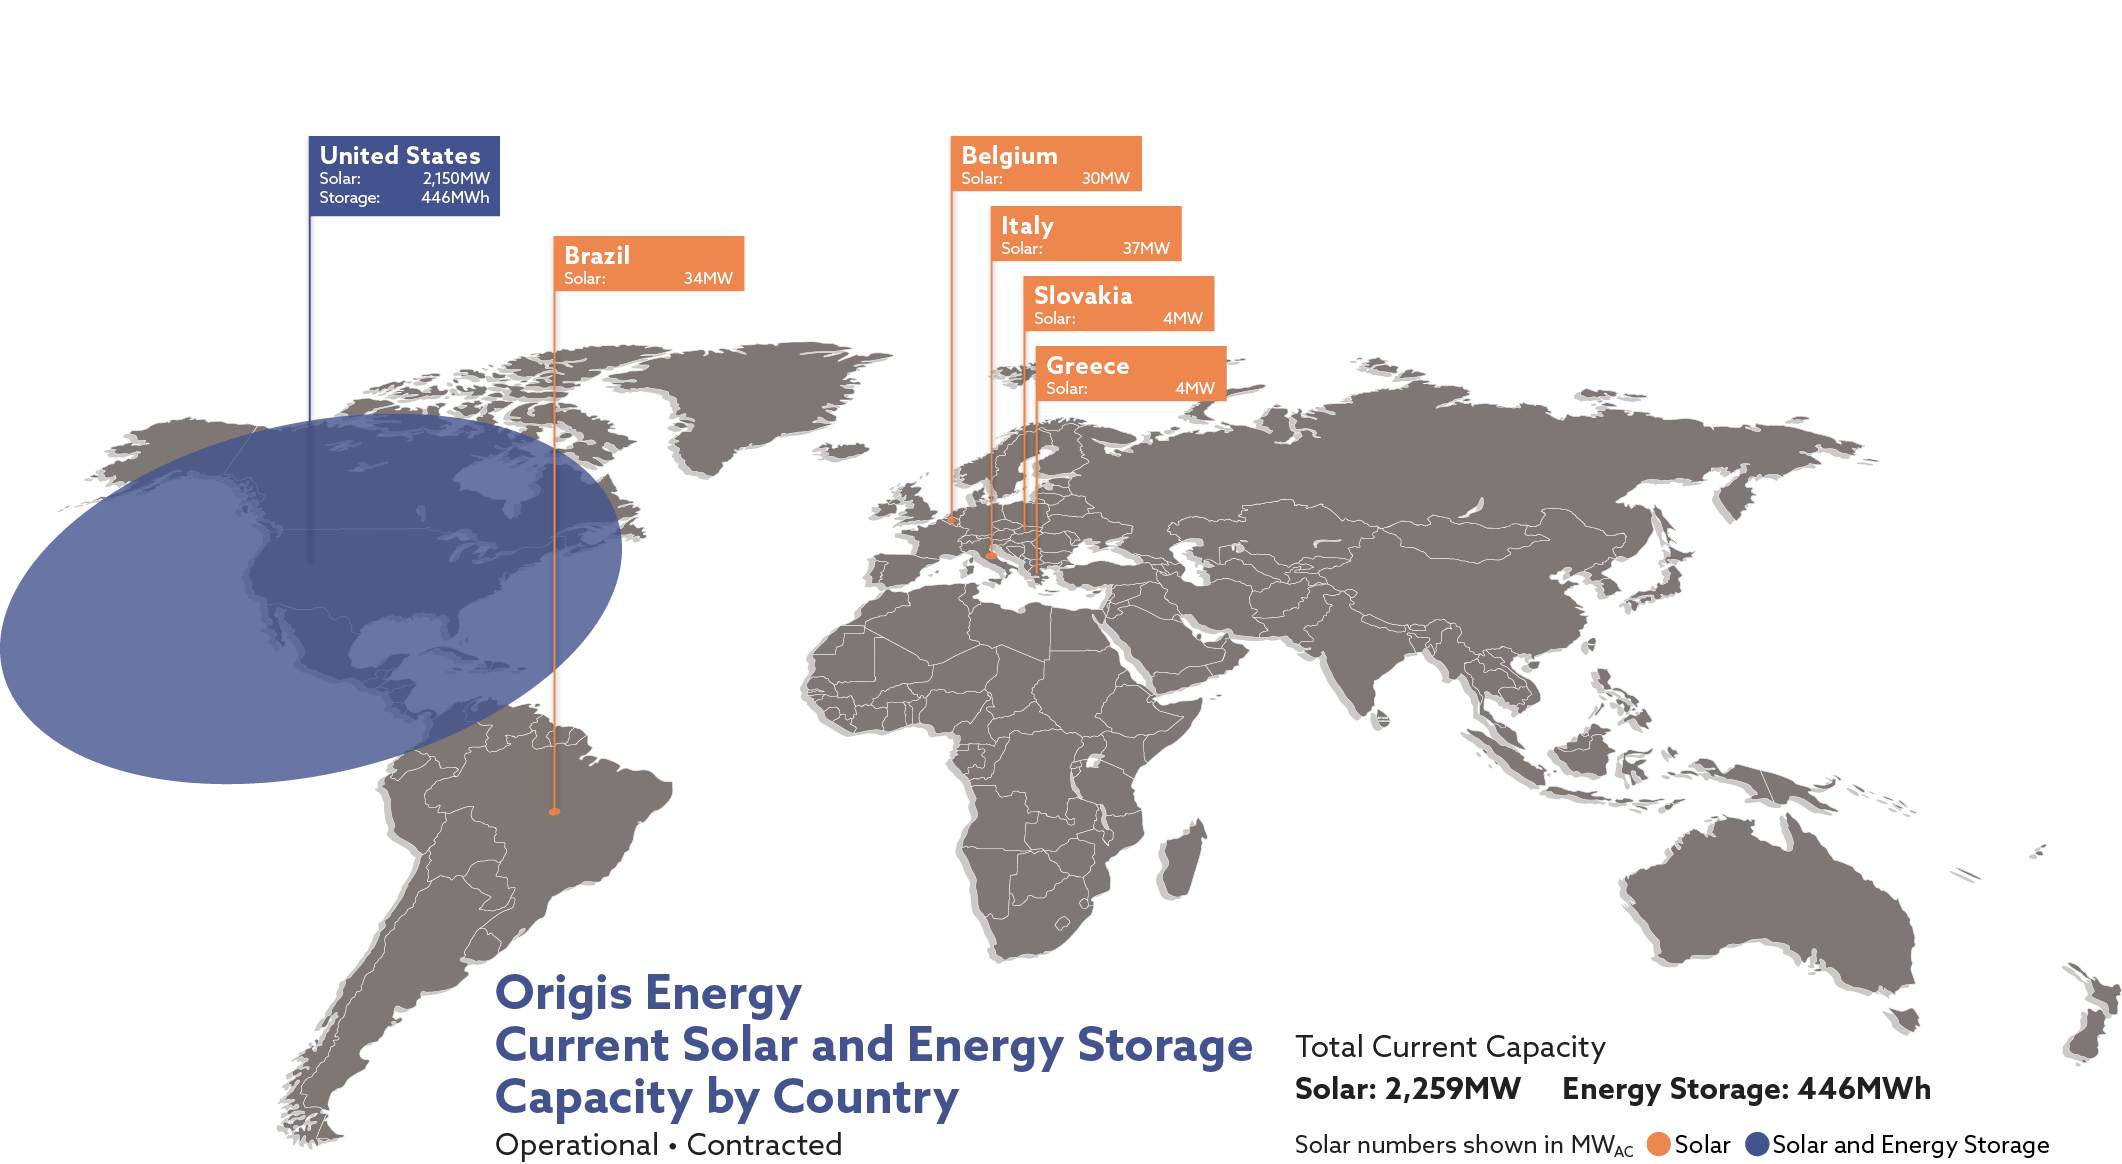 Origis Energy global capacity image